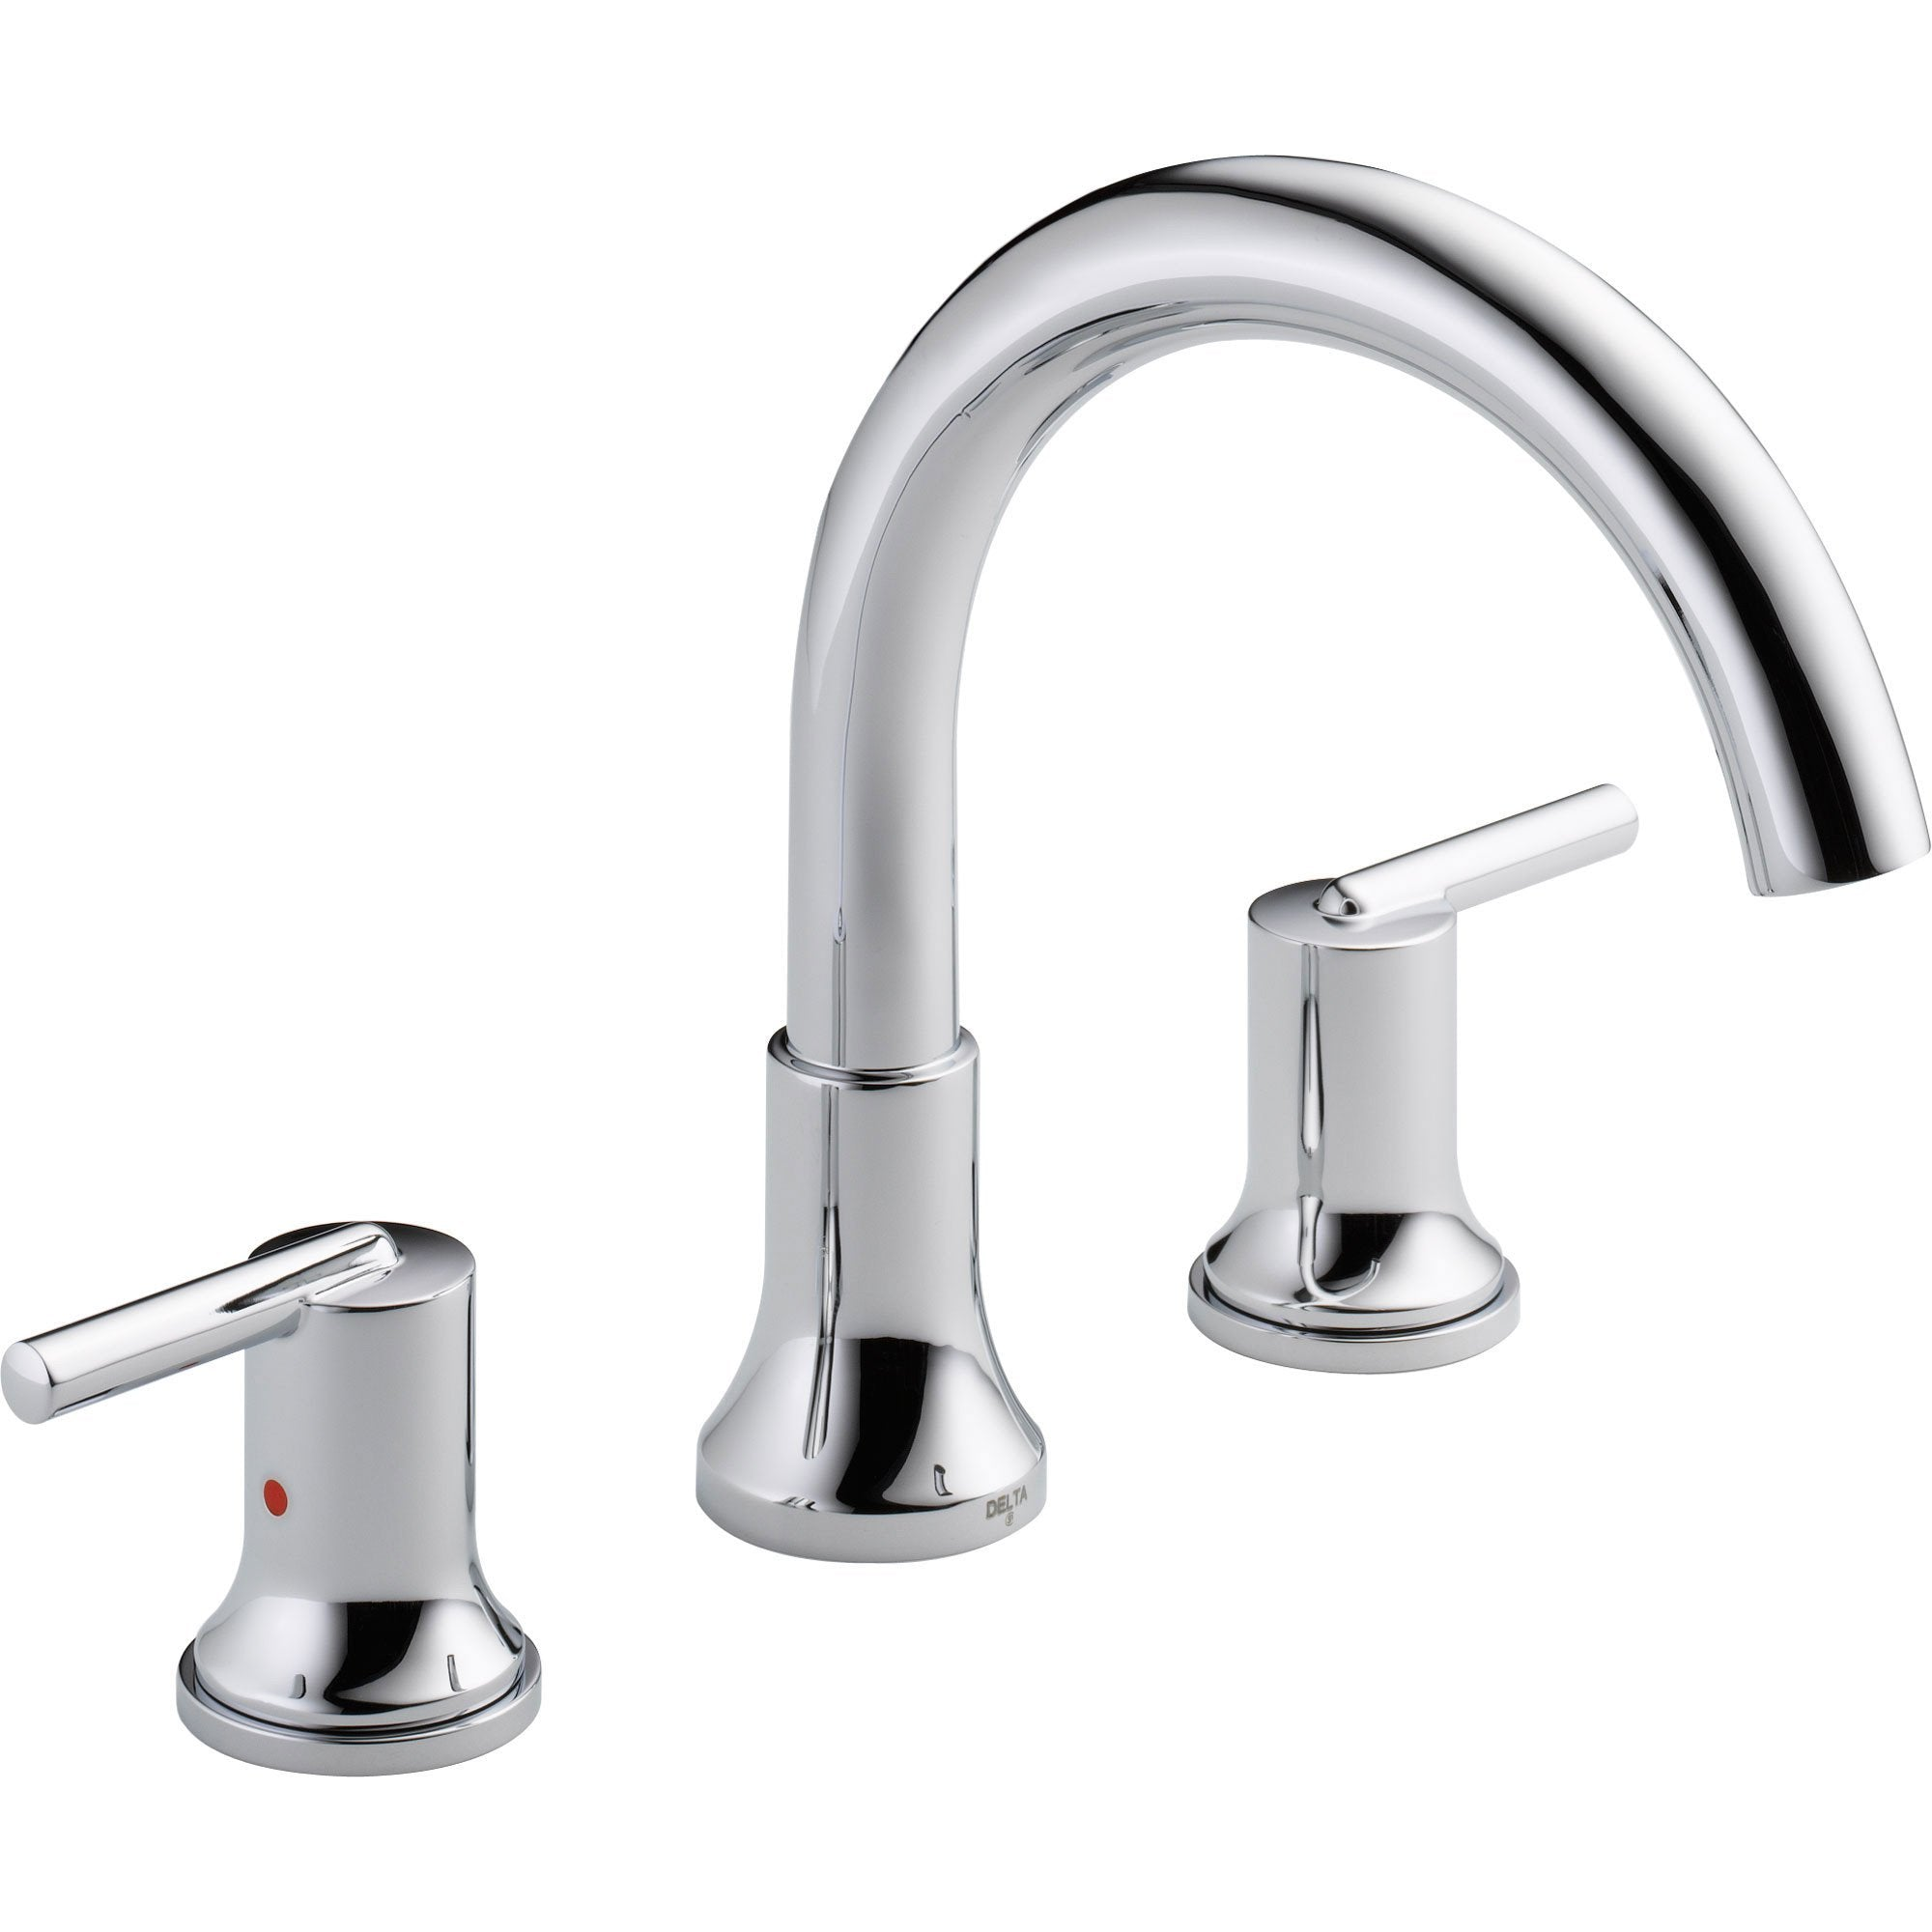 Delta Trinsic Modern Chrome 2-Handle Roman Tub Filler Faucet with Valve D908V